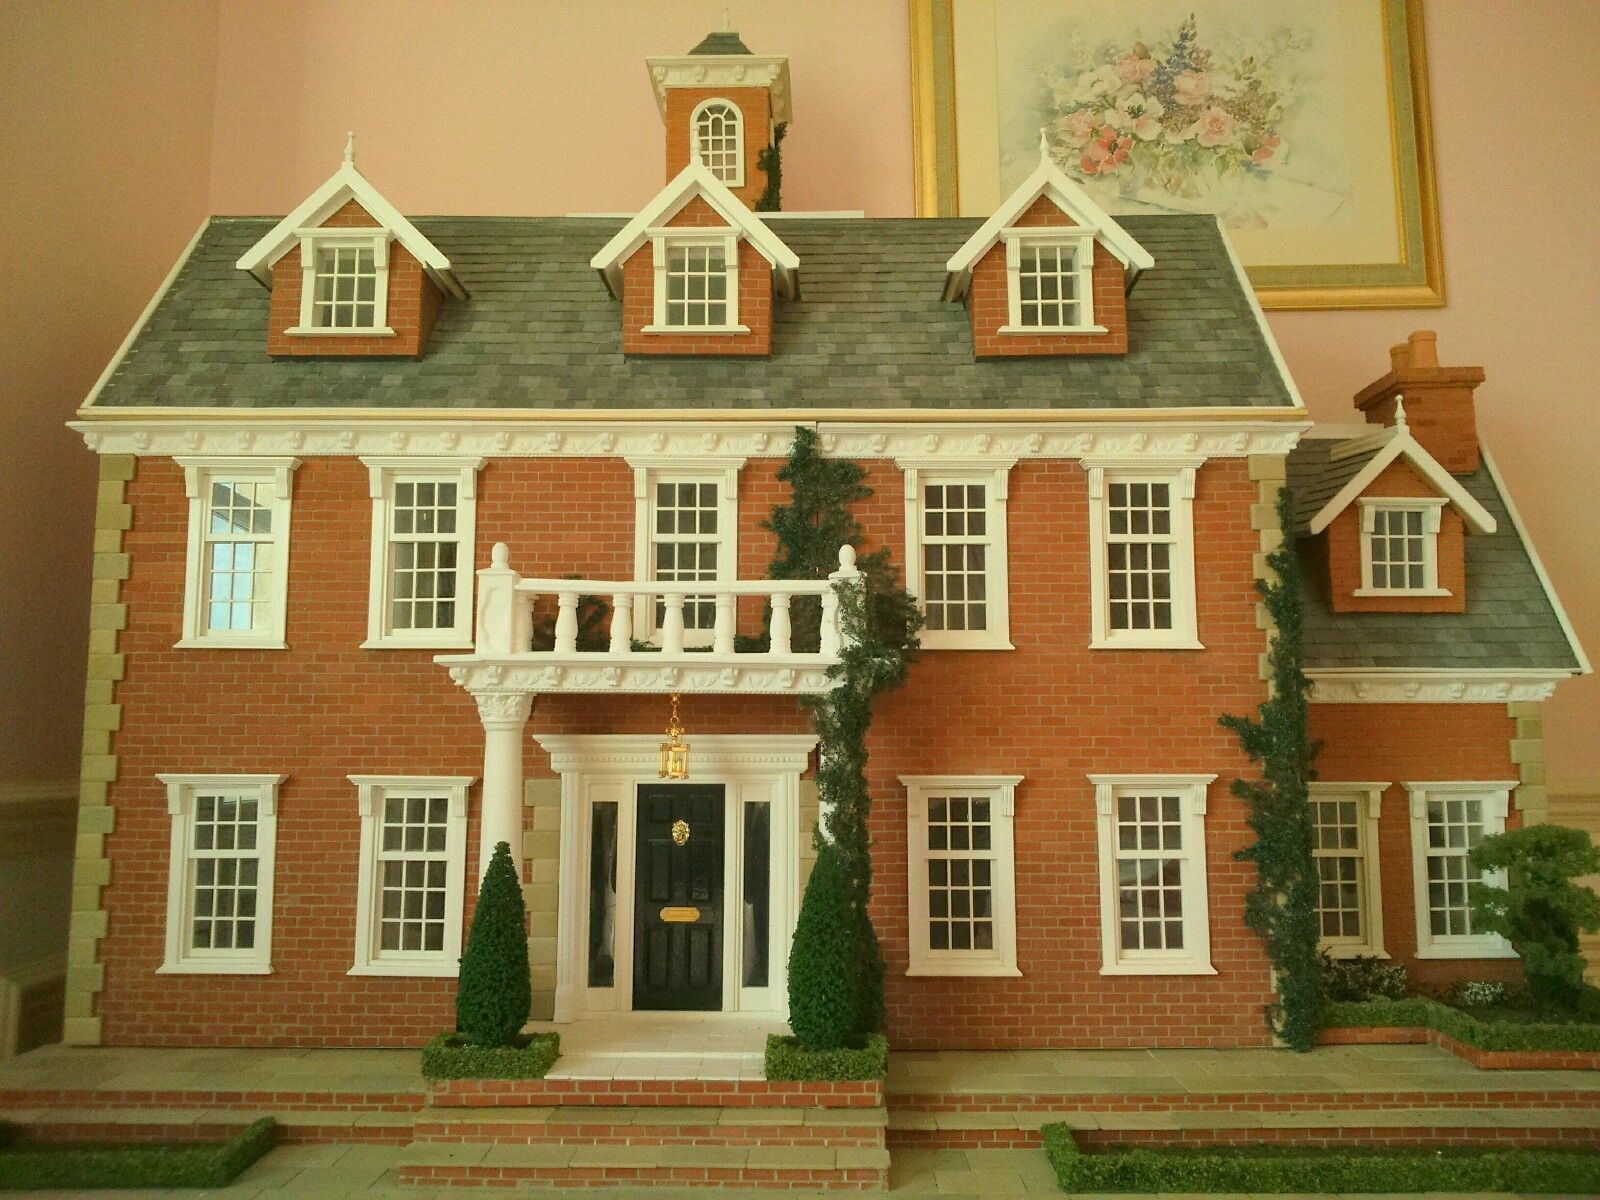 dolls house ebay jt this is a beautiful dolls house see interior